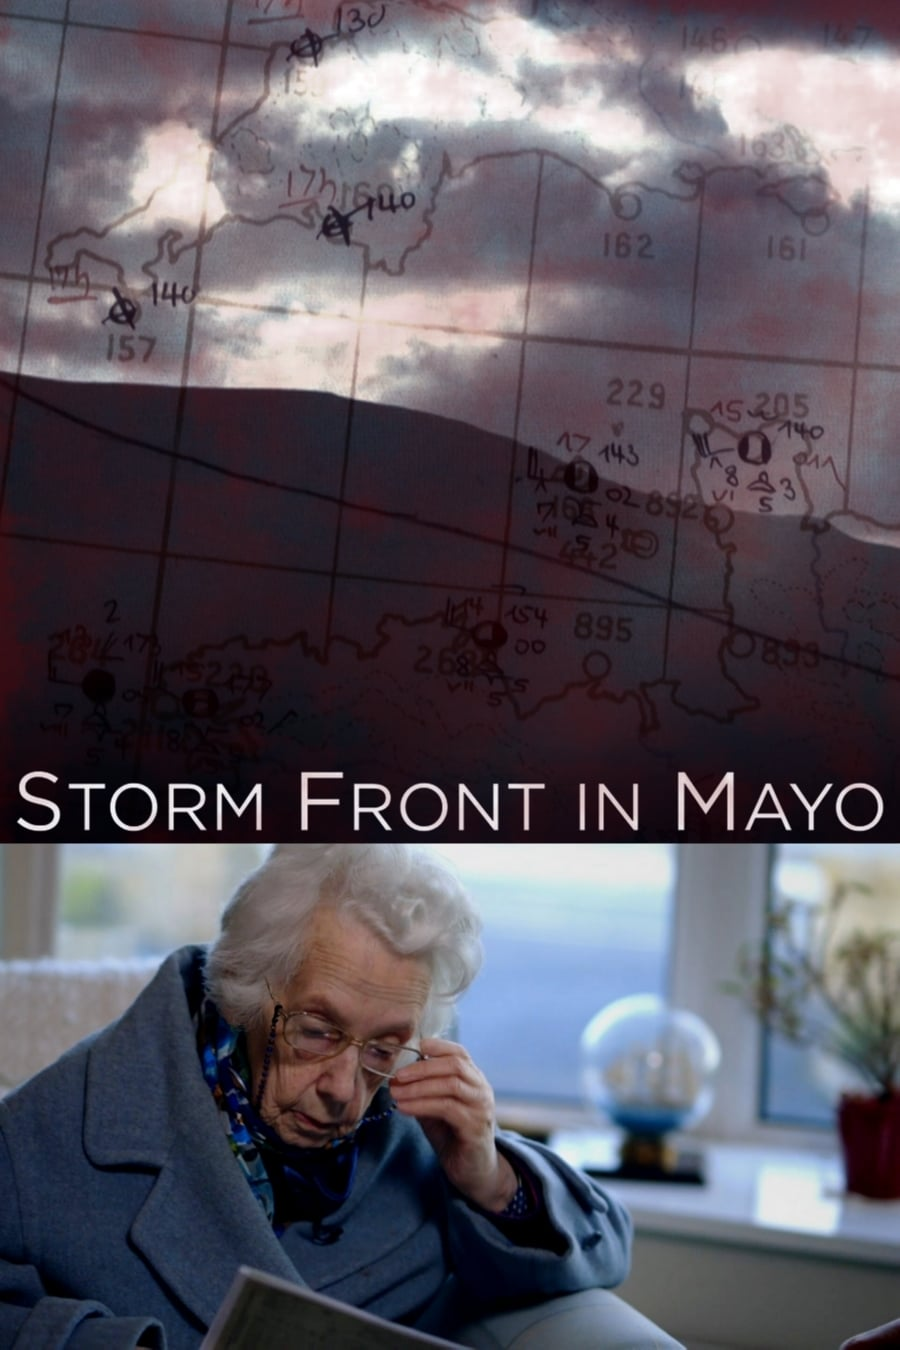 Storm Front in Mayo: The Story of the D-Day Forecast (2019)